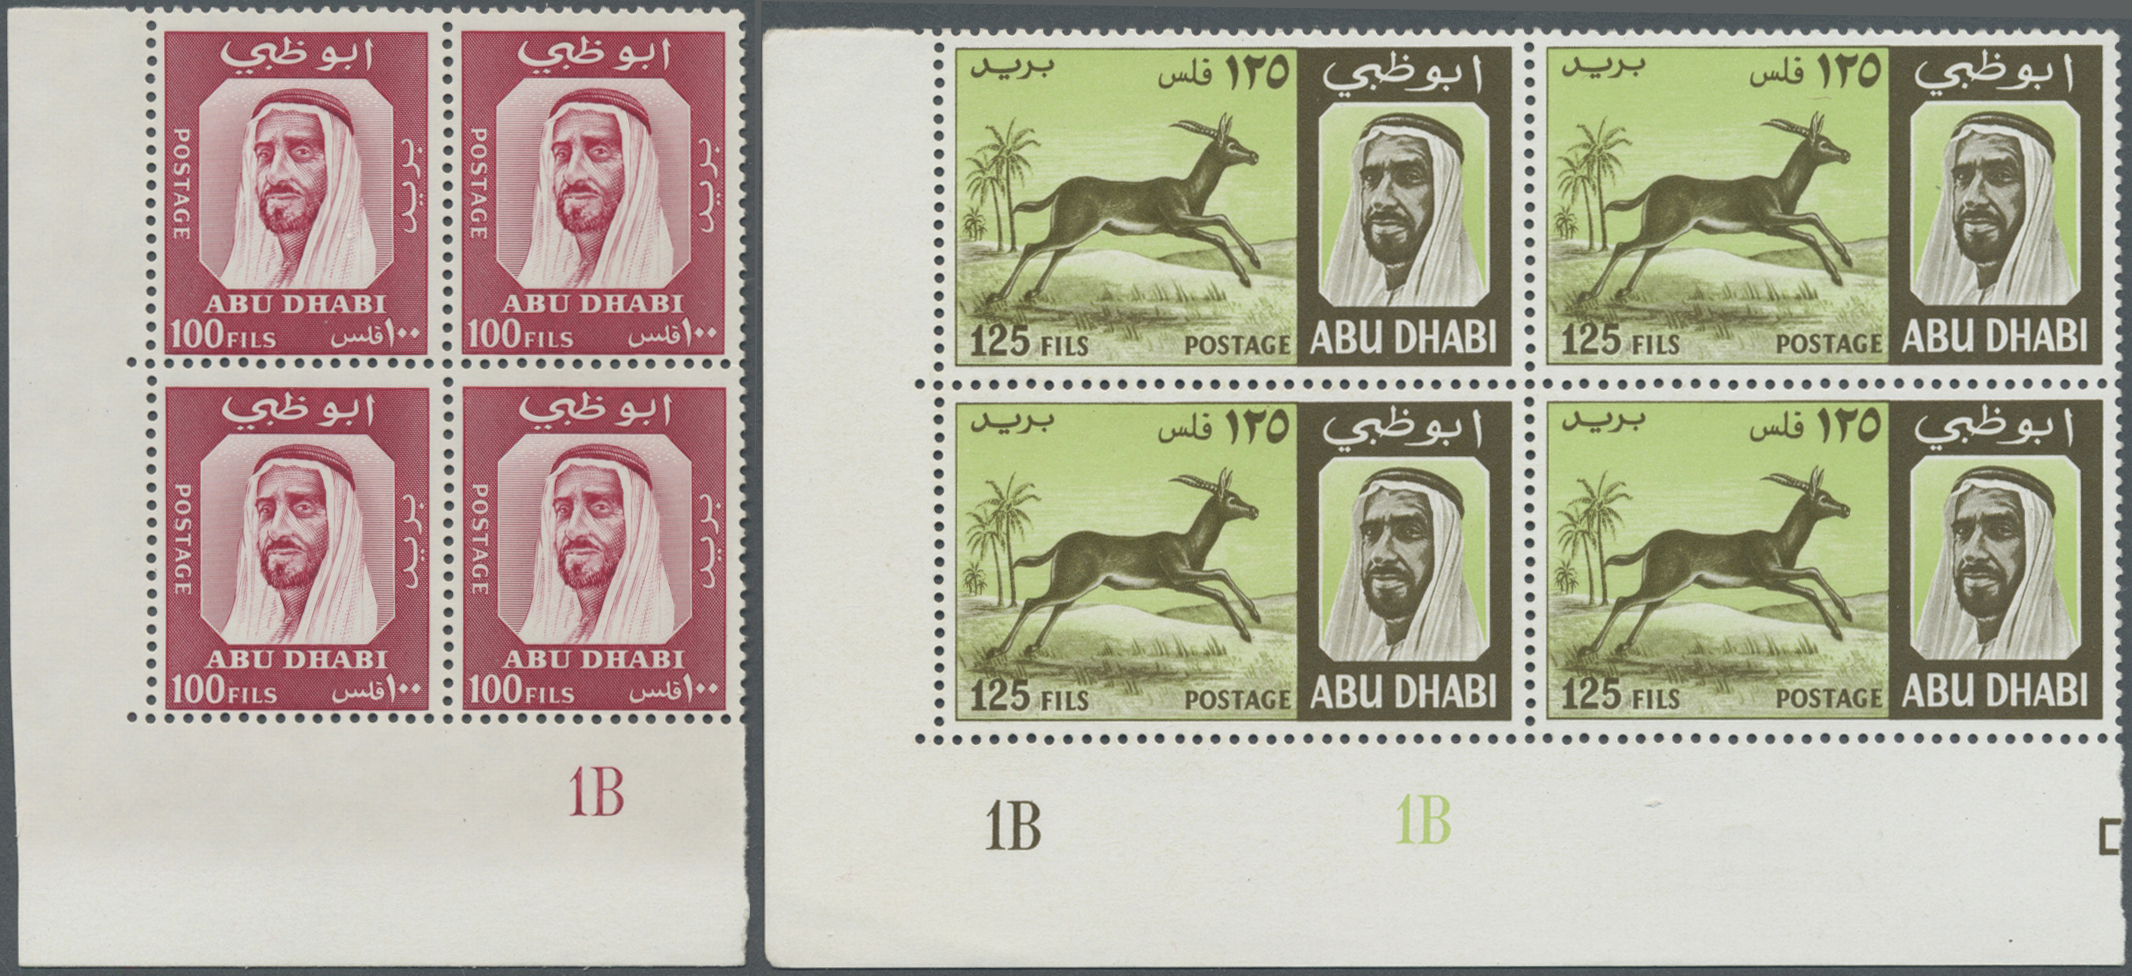 Lot 5001 - Abu Dhabi  -  Auktionshaus Christoph Gärtner GmbH & Co. KG Philately: ASIA single lots including Special Catalog Malaya Auction #39 Day 3